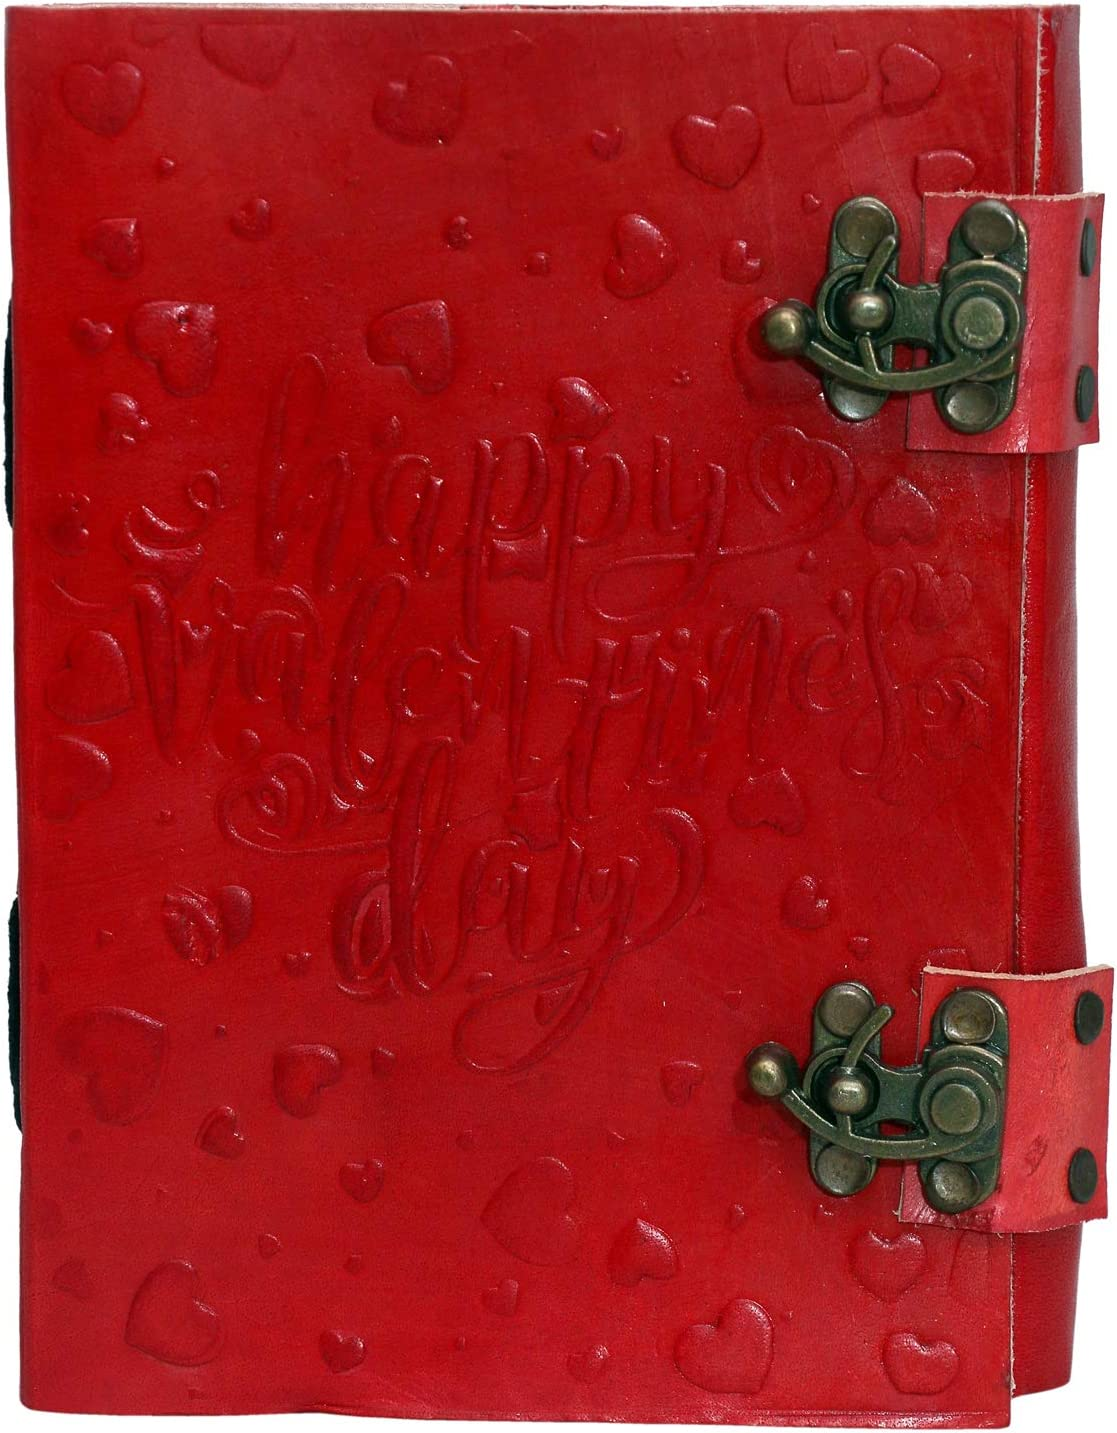 Leather Journal Diary Heart Embossed Double C-Lock Handmade Vintage Antique Notebook Notepad Sketchpad Gift for Men Women 7X5 inches Red Valentine Day